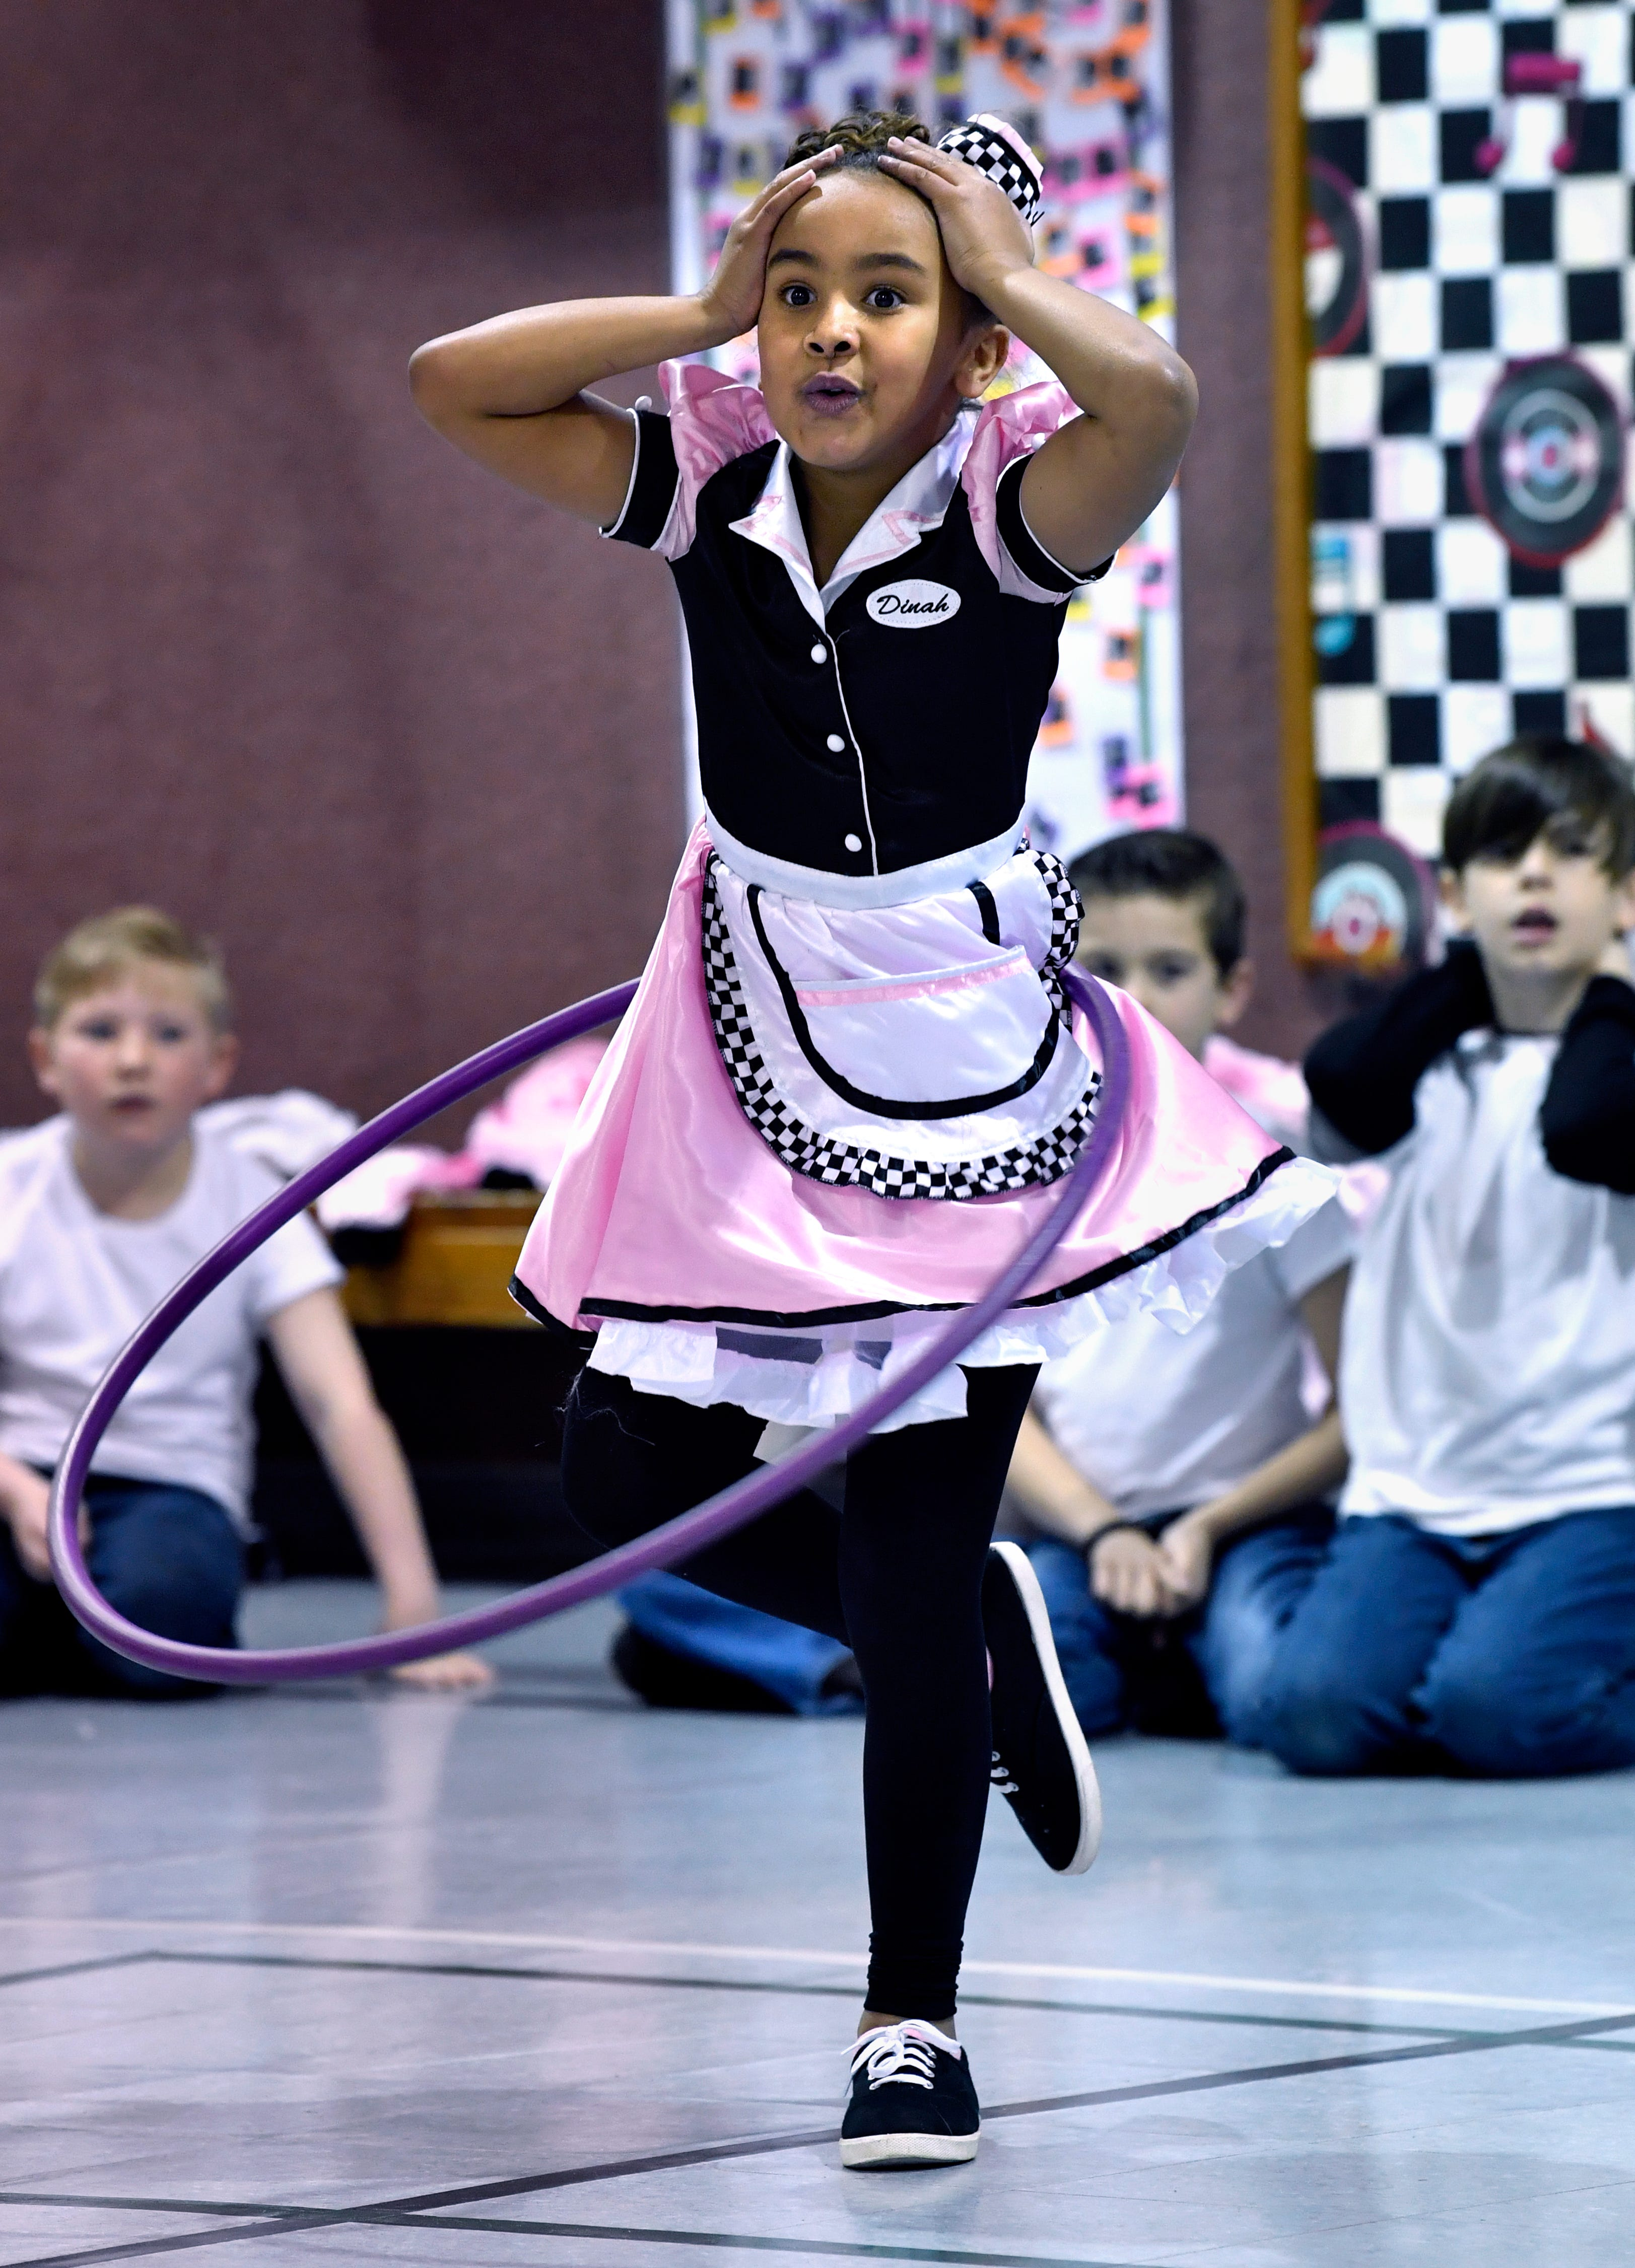 Third-grader Ciara Robinson lifts a leg and holds her hands to her head while swinging a hula hoop during a contest in the Austin Elementary School gymnasium Jan. 25. Students from all grades participated in games and dances during Fifties Day.